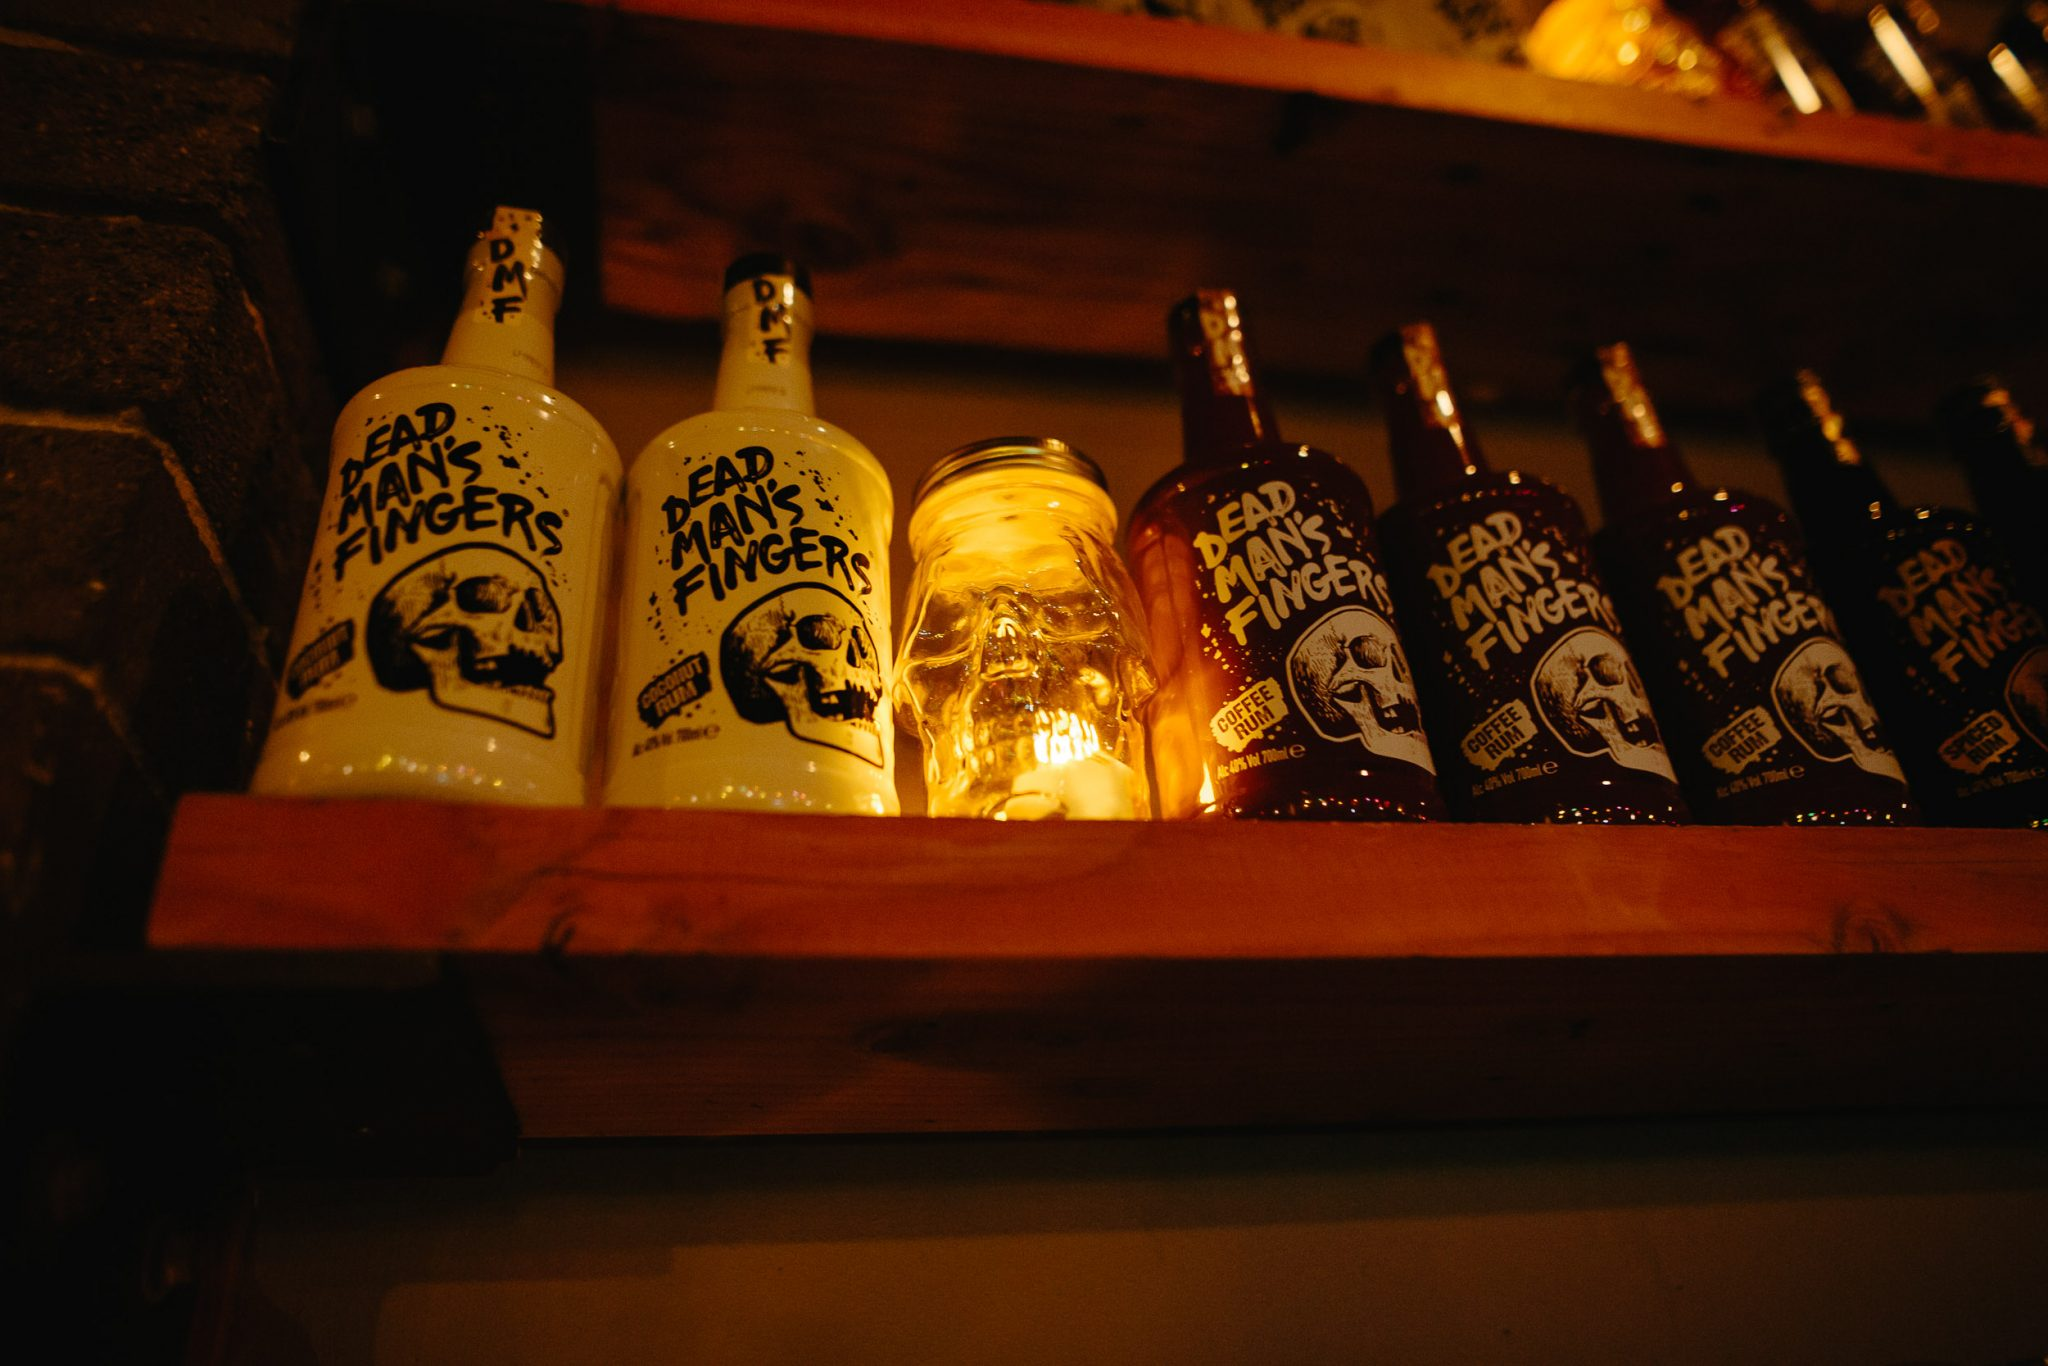 Hands up if you like spiced rum? Well, this one's for you. The latest spiced rum to hit Aussie shores, Dead Man's Fingers, is taking over Freda's Bar in Chippendale during selected band nights in December. Kicking off on 11 December, pop up bar, The Finger @ Freda's, will run for two weeks only with ticket holders scoring a complimentary Dead Man's Fingers cocktail upon arrival.  The Finger @ Freda's will be serving up classic cocktails with an unconventional twist that bring spiced rum to another level. The menu will feature the Dead Man's Fingers Libre - refreshing with a cheeky kick of Saffron Cake that's signature to Dead Man's Fingers Spiced Rum, the Dead Man's Fingers Espresso Martini - the sweetness of the chocolate orange notes from the Dead Man's Fingers Coffee Spiced Rum you'll be digging, and the Dead Man's Fingers Dark and Stormy - it's plummy, rummy and hella yummy.  The cocktails are available for only a cheeky tenner all night long so you can sip and get down while the band is playing. It's thirsty work.  What: Dead Man's Fingers 'The Finger @ Freda's' pop up When: Wednesday, 11 December: Highline Thursday, 12 December: Asbestos Removal Wednesday, 18 December:  Cracked Records present Cream (showcase feat Travy P,  Y1 $ R.E.L, Purpose I Kuluz, Feat. Kanyiso & Maite, Bodega DJ's, Fly Waves) Thursday, 19 December: Dave The Band Where: 109 Regent St, Chippendale, 2008  From: 8pm until 2am First in best dressed as tickets are only available at the door.